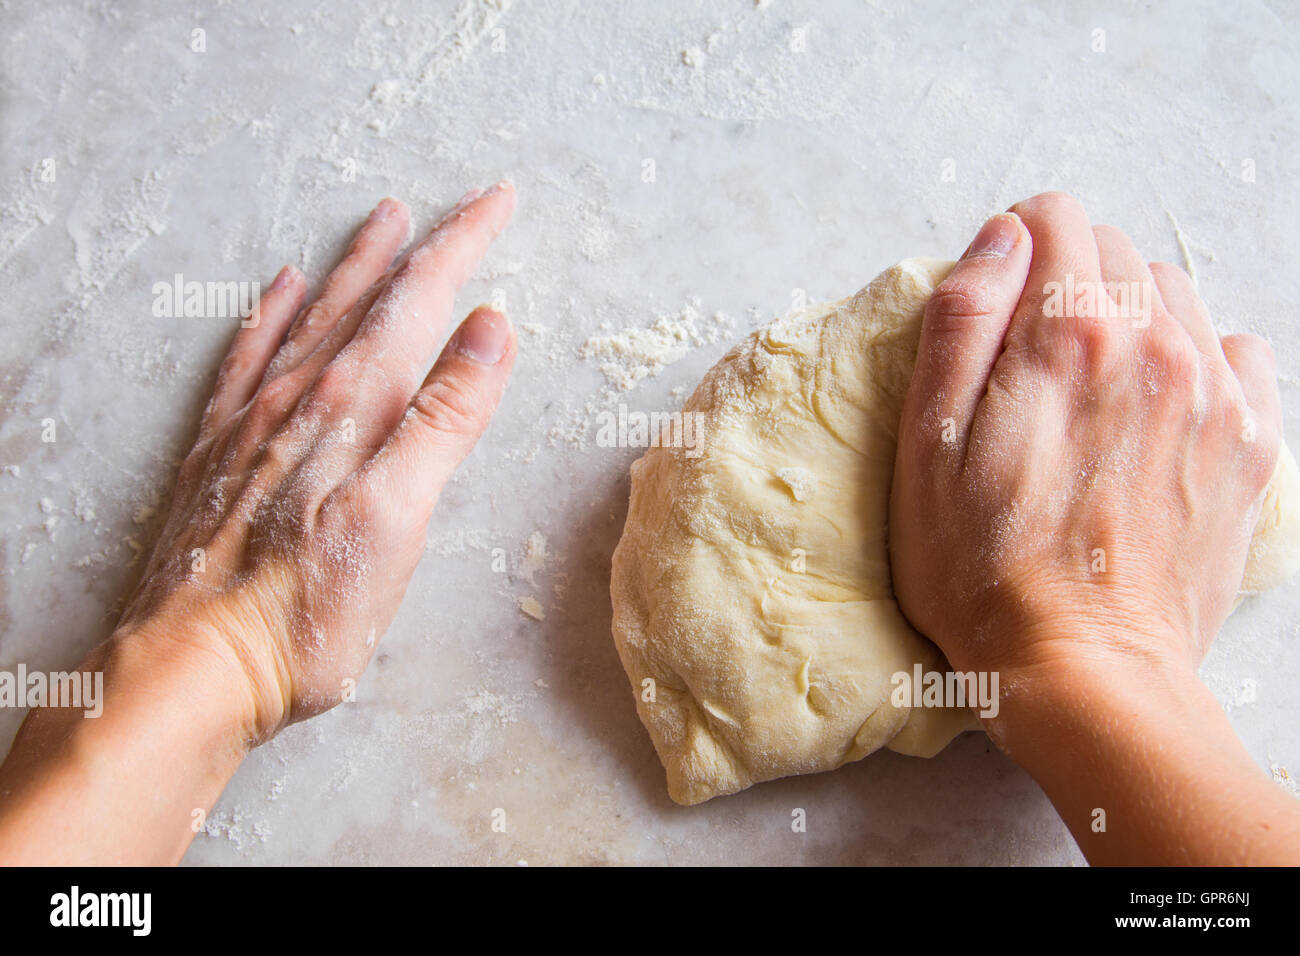 Hands kneading dough on white table Stock Photo